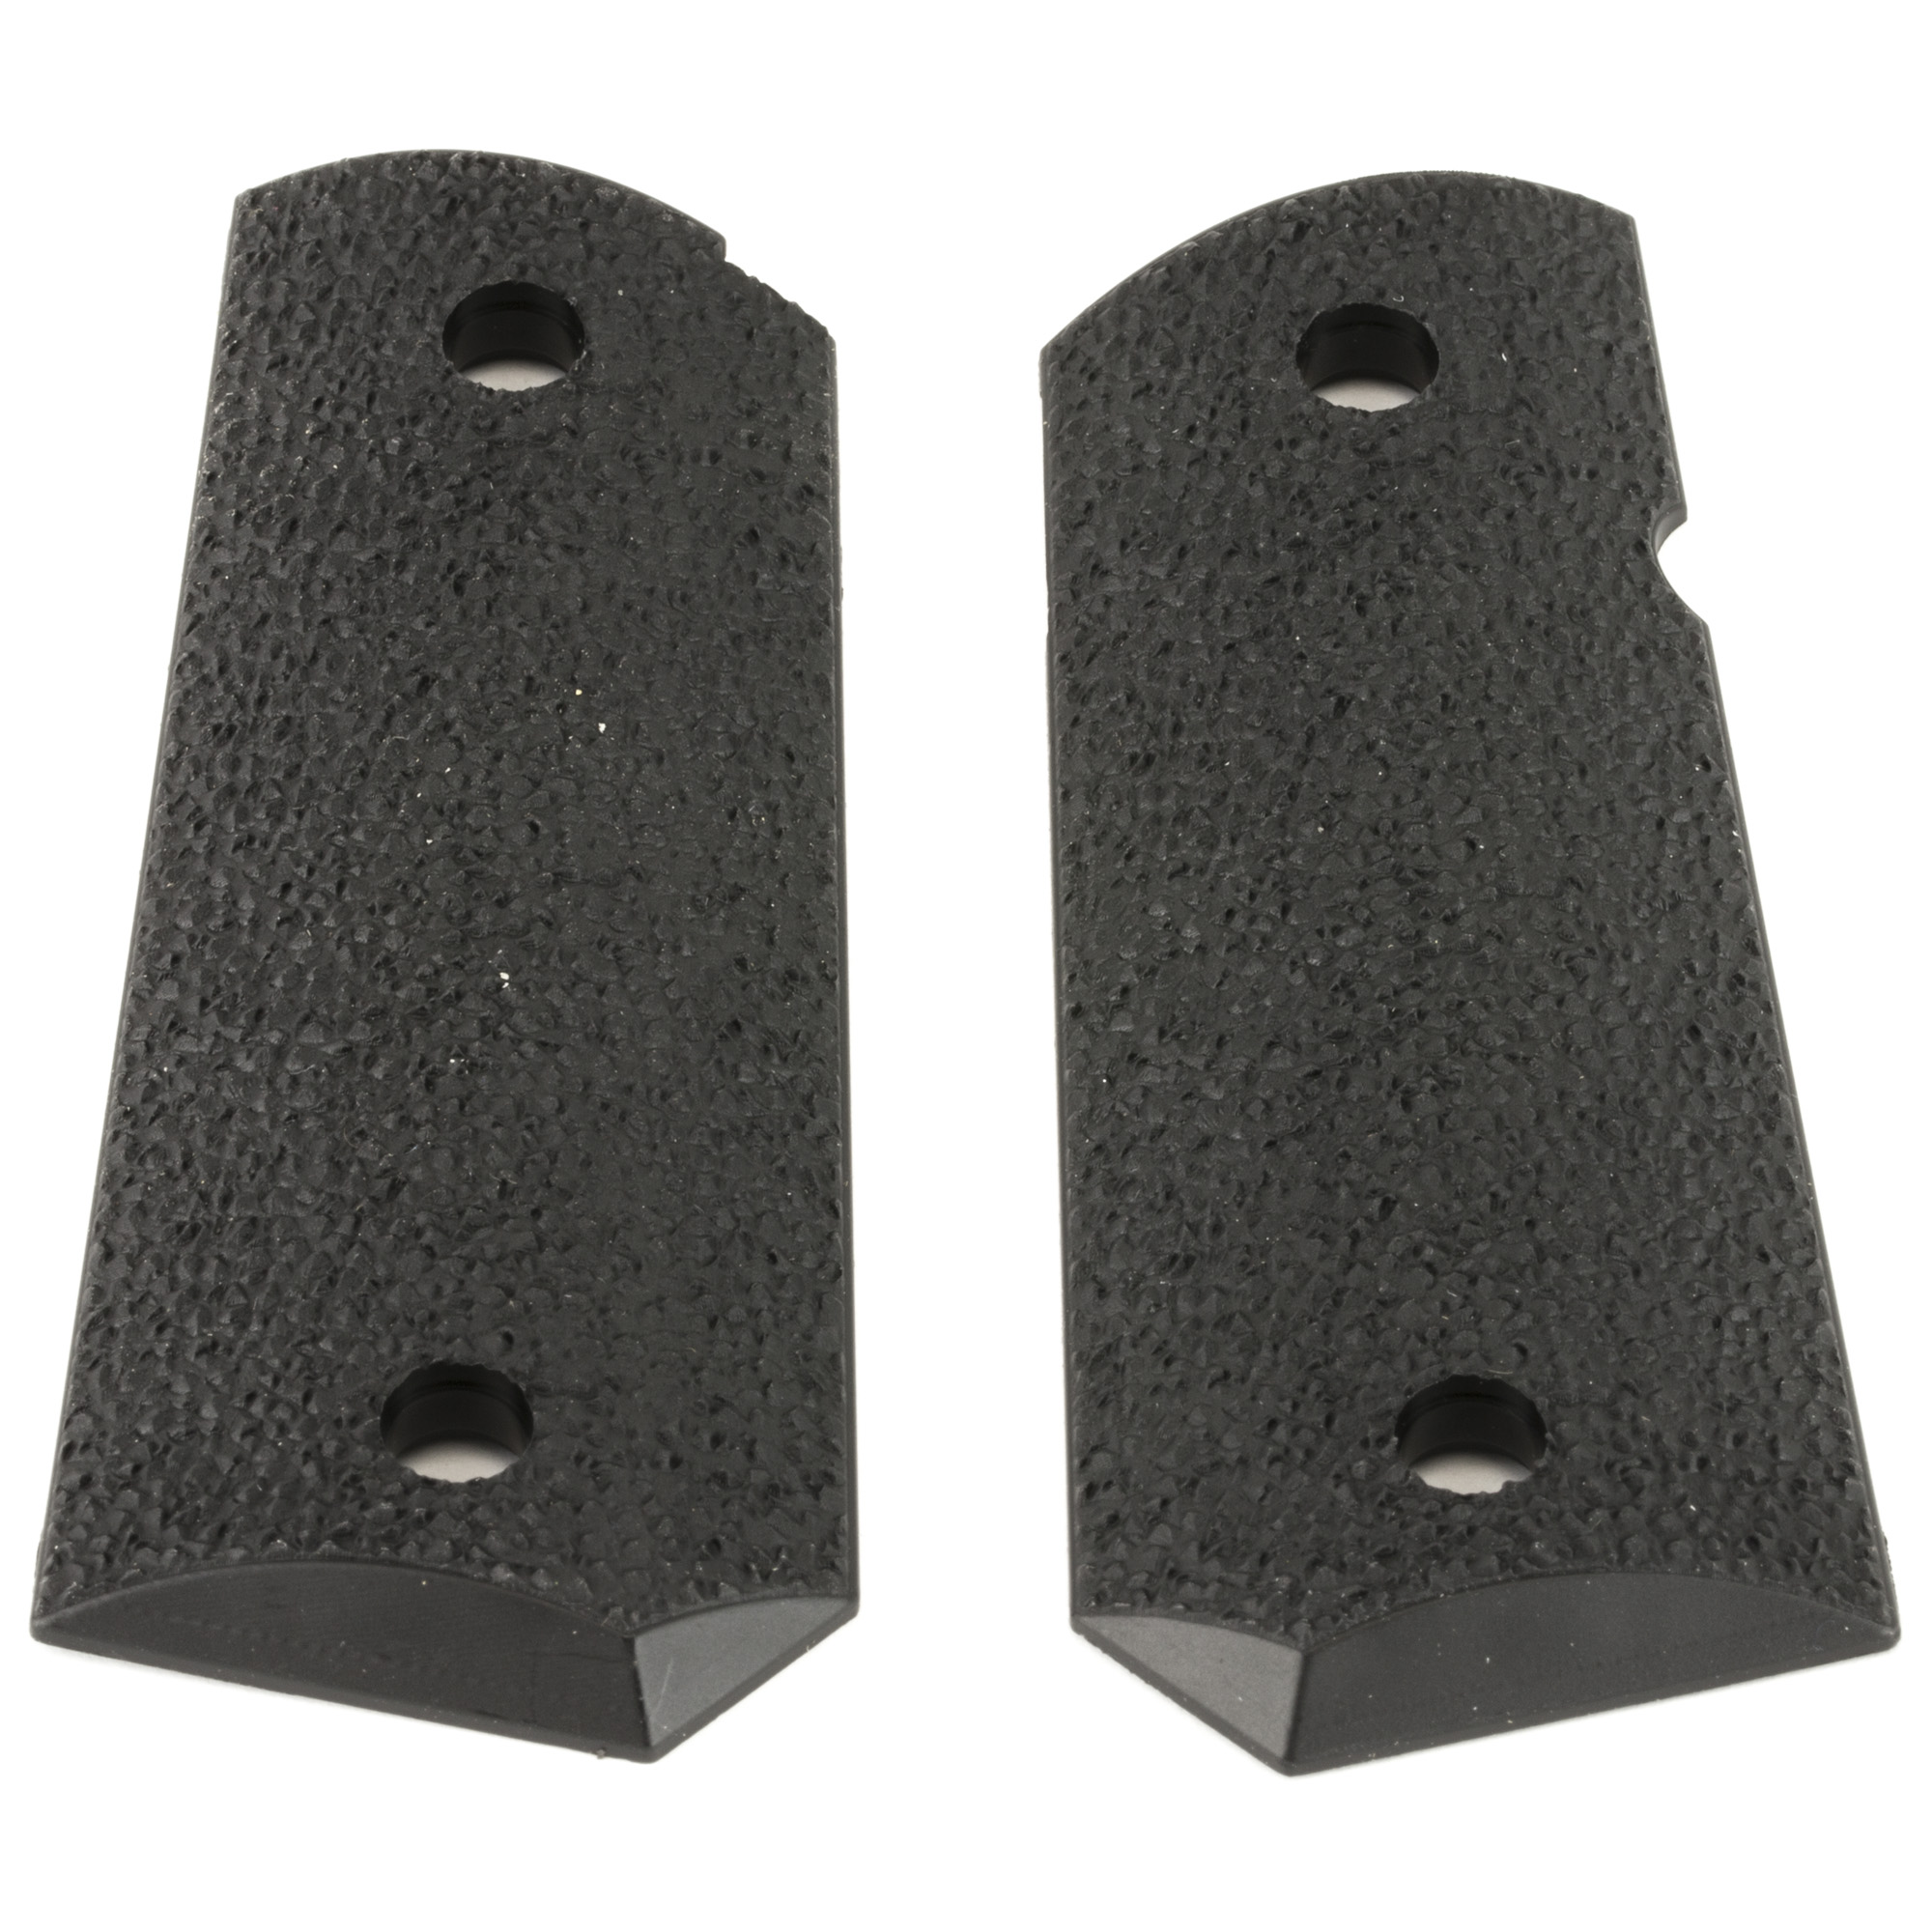 "ERGO's XTRO Officer's Model Tapered Bottom Hard Rubber 1911 Grip is a heavily textured"" minimally abrasive grip for Officer Model 1911 frames. Its thin profile attaches with standard grip screws and is designed to accommodate ambidextrous safety options."